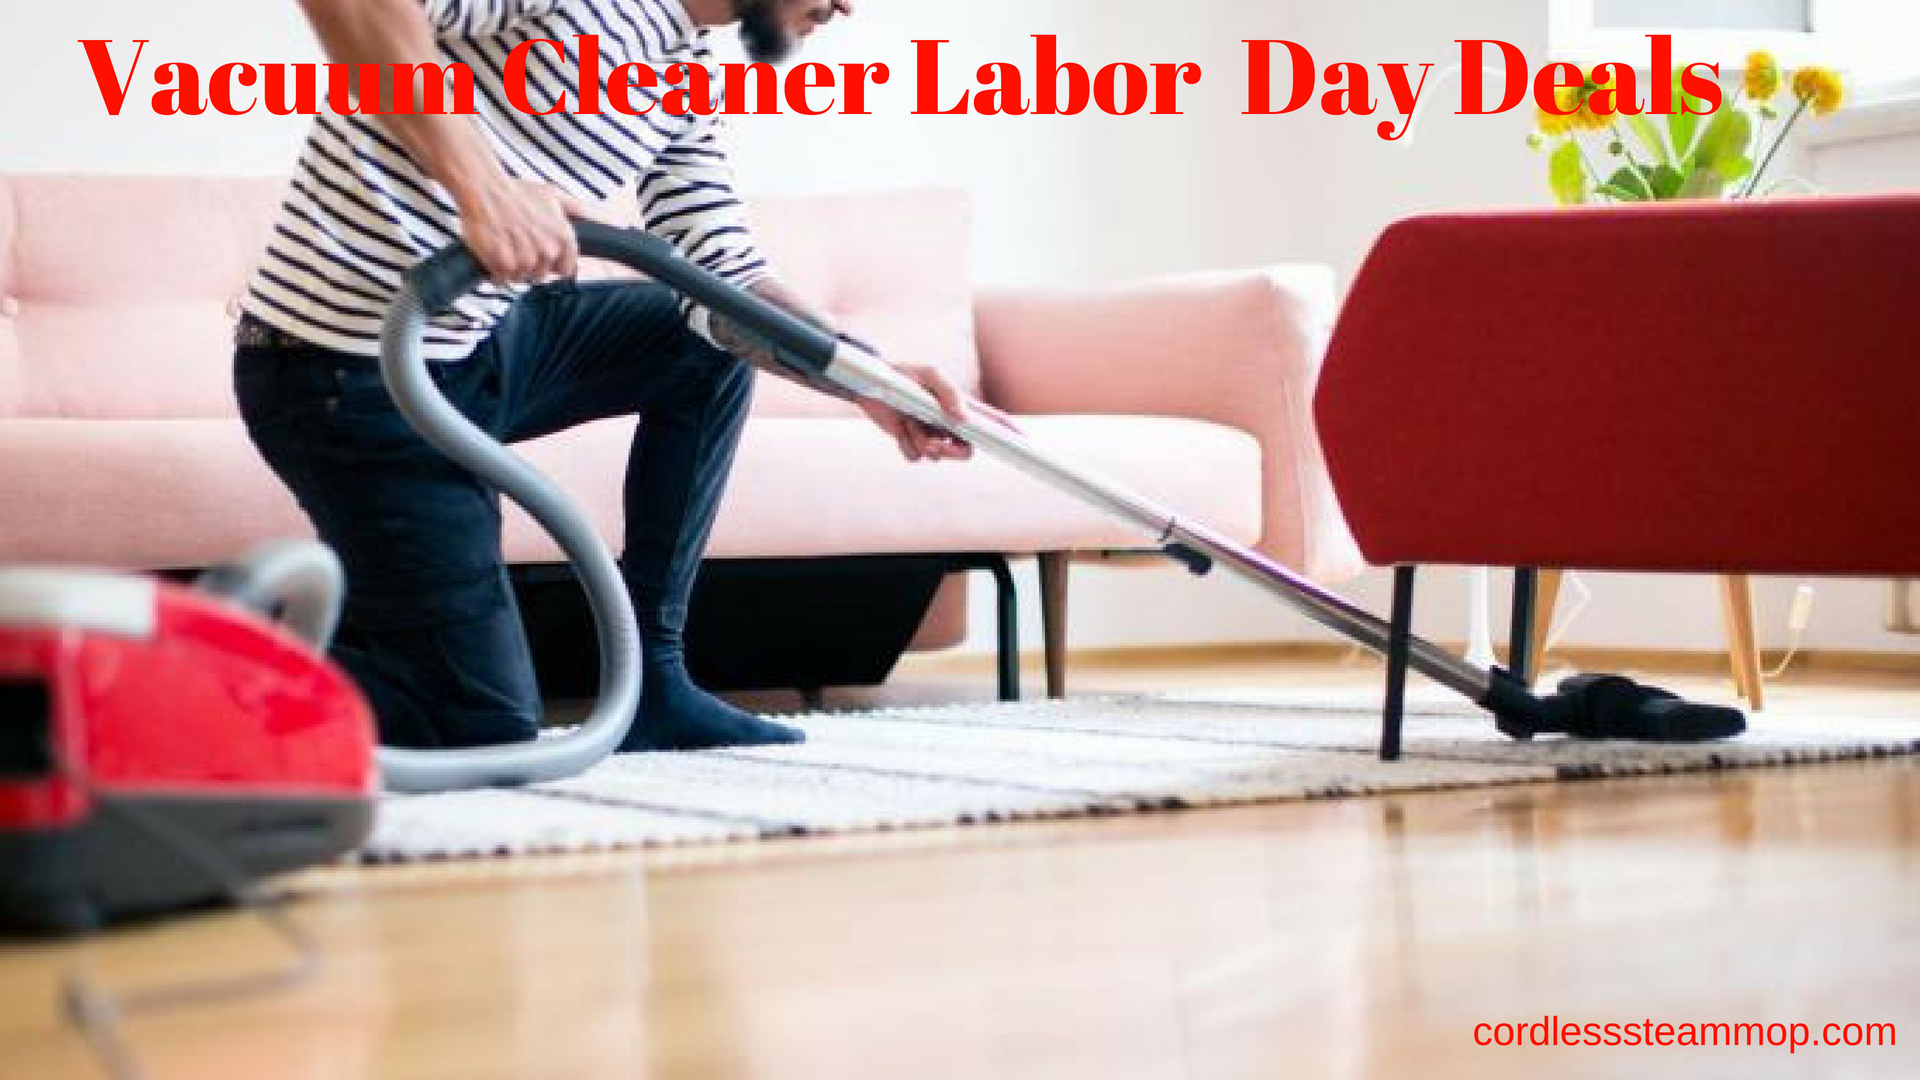 Vacuum Cleaner Labor Day Deals 2019